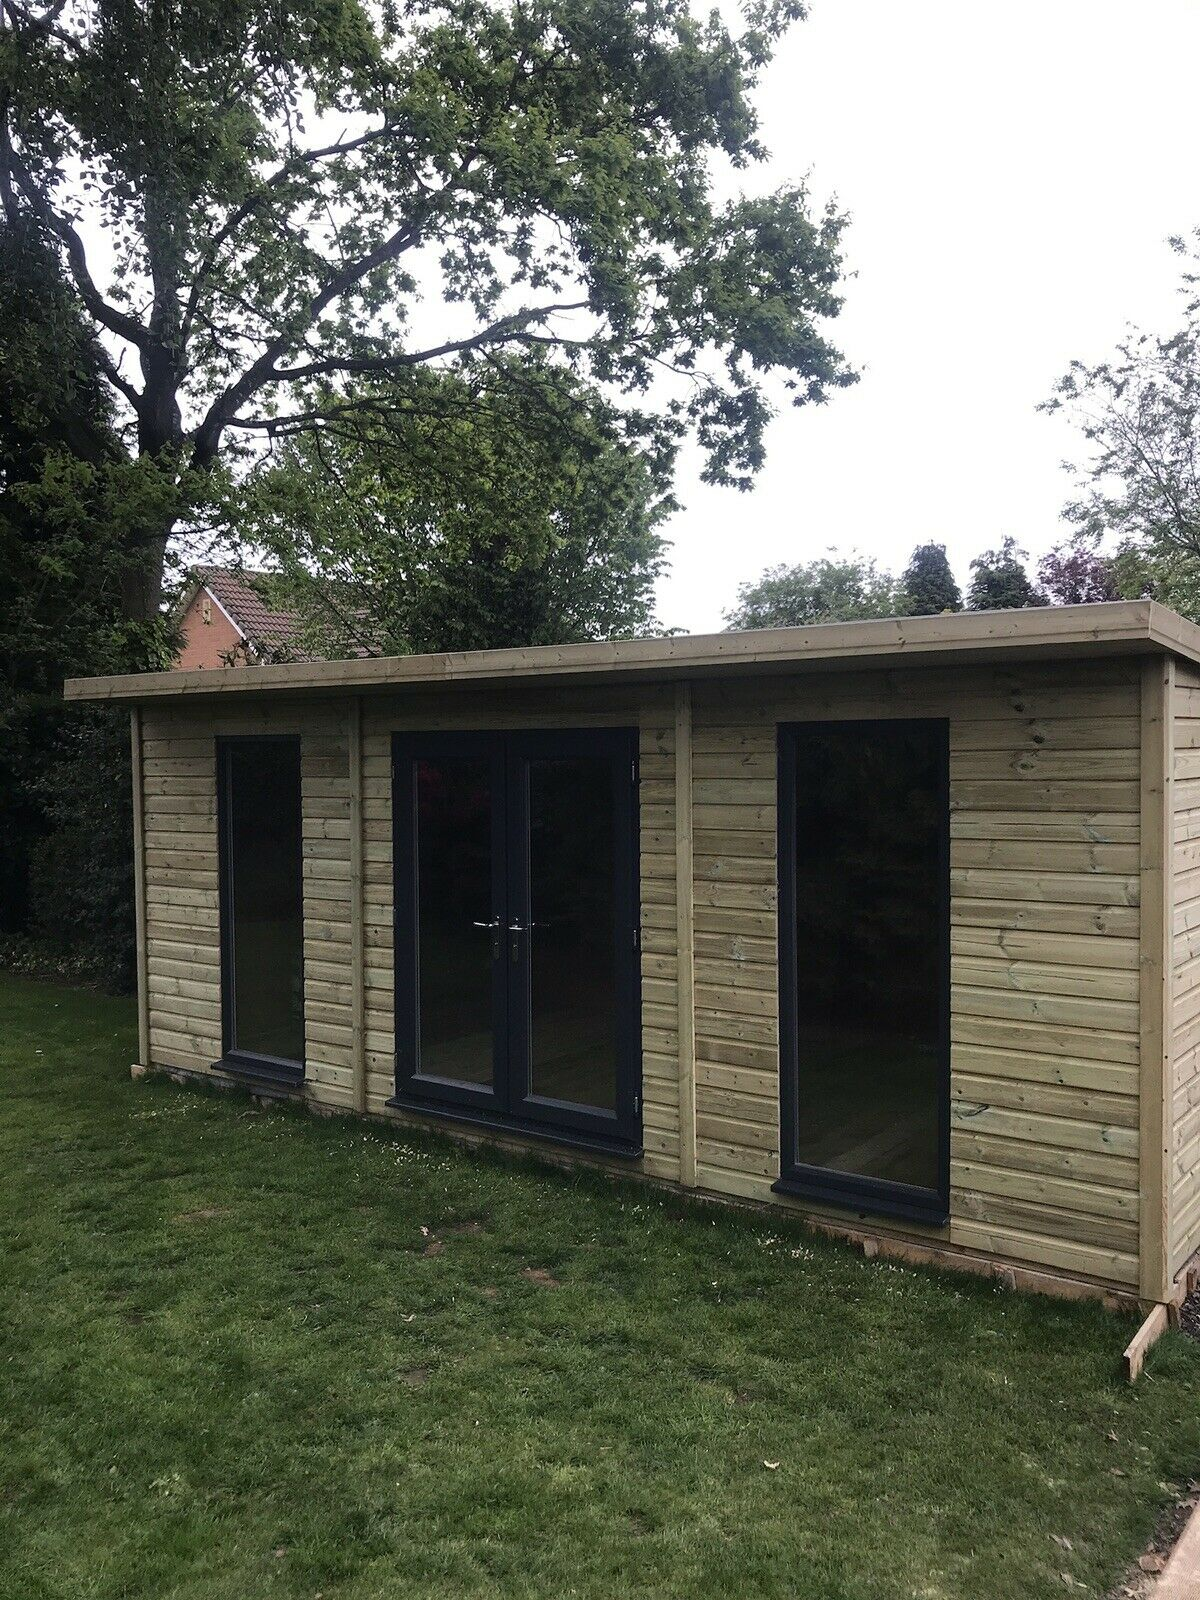 20 X 10ft Garden Workshop Studio Shed Contemporary Wooden Summerhouse With Canopy Midlands Sheds Summer Houses